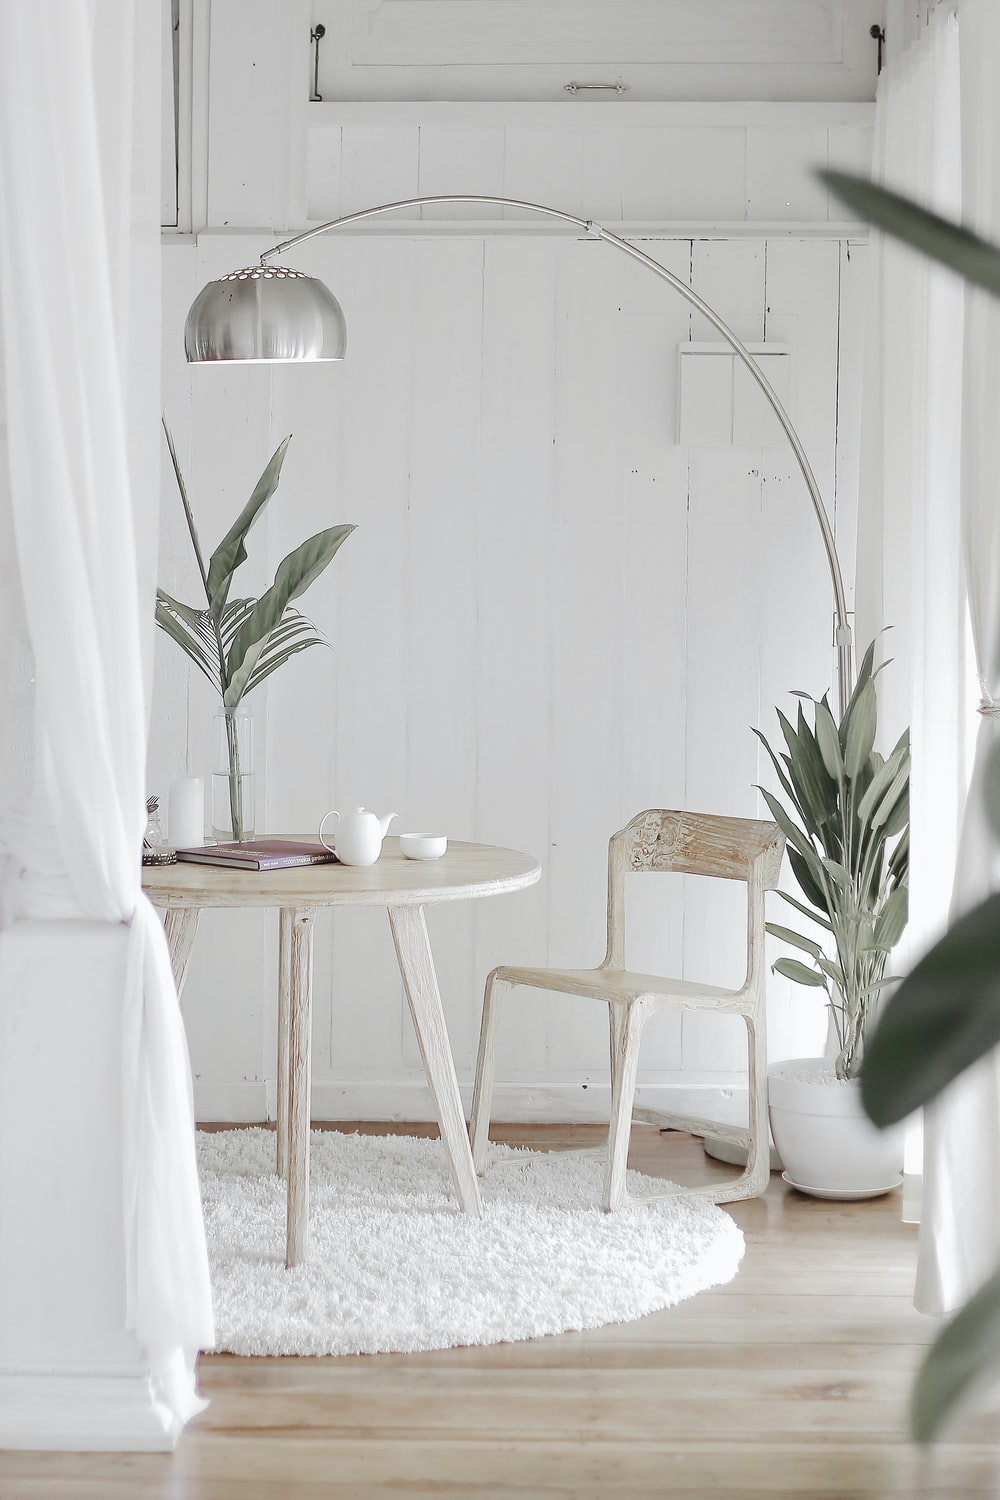 white steel chair in front round table on white rug